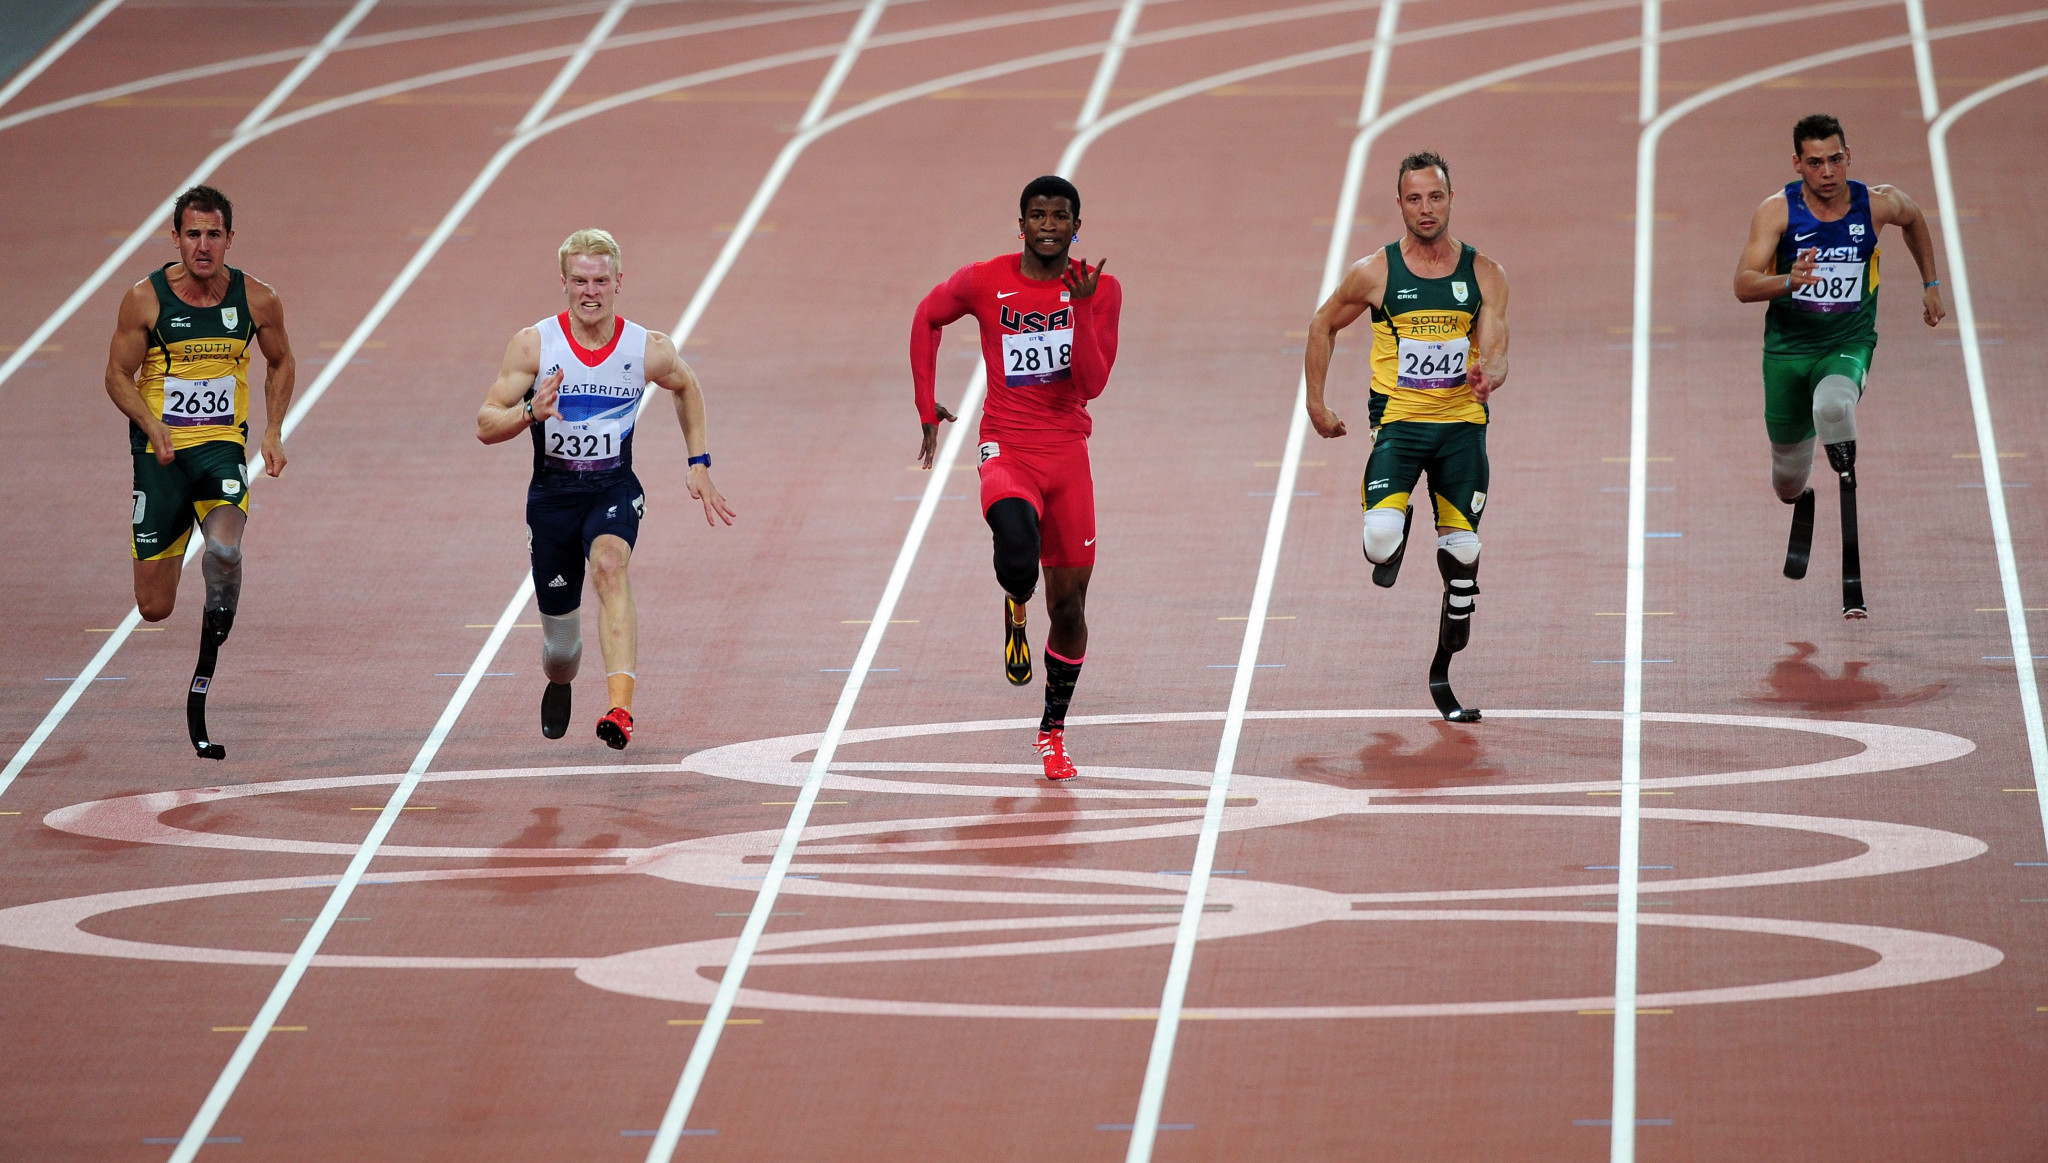 (L-R) Arnu Fourie of South Africa, Jonnie Peacock of Great Britain, Richard Browne of the United States, Oscar Pistorius of South Africa and Alan Oliveira Cardoso Oliveira of Brazil compete in the Men's 100m - T44 Final on day 8 of the London 2012 Paralympic Games ©Getty Images